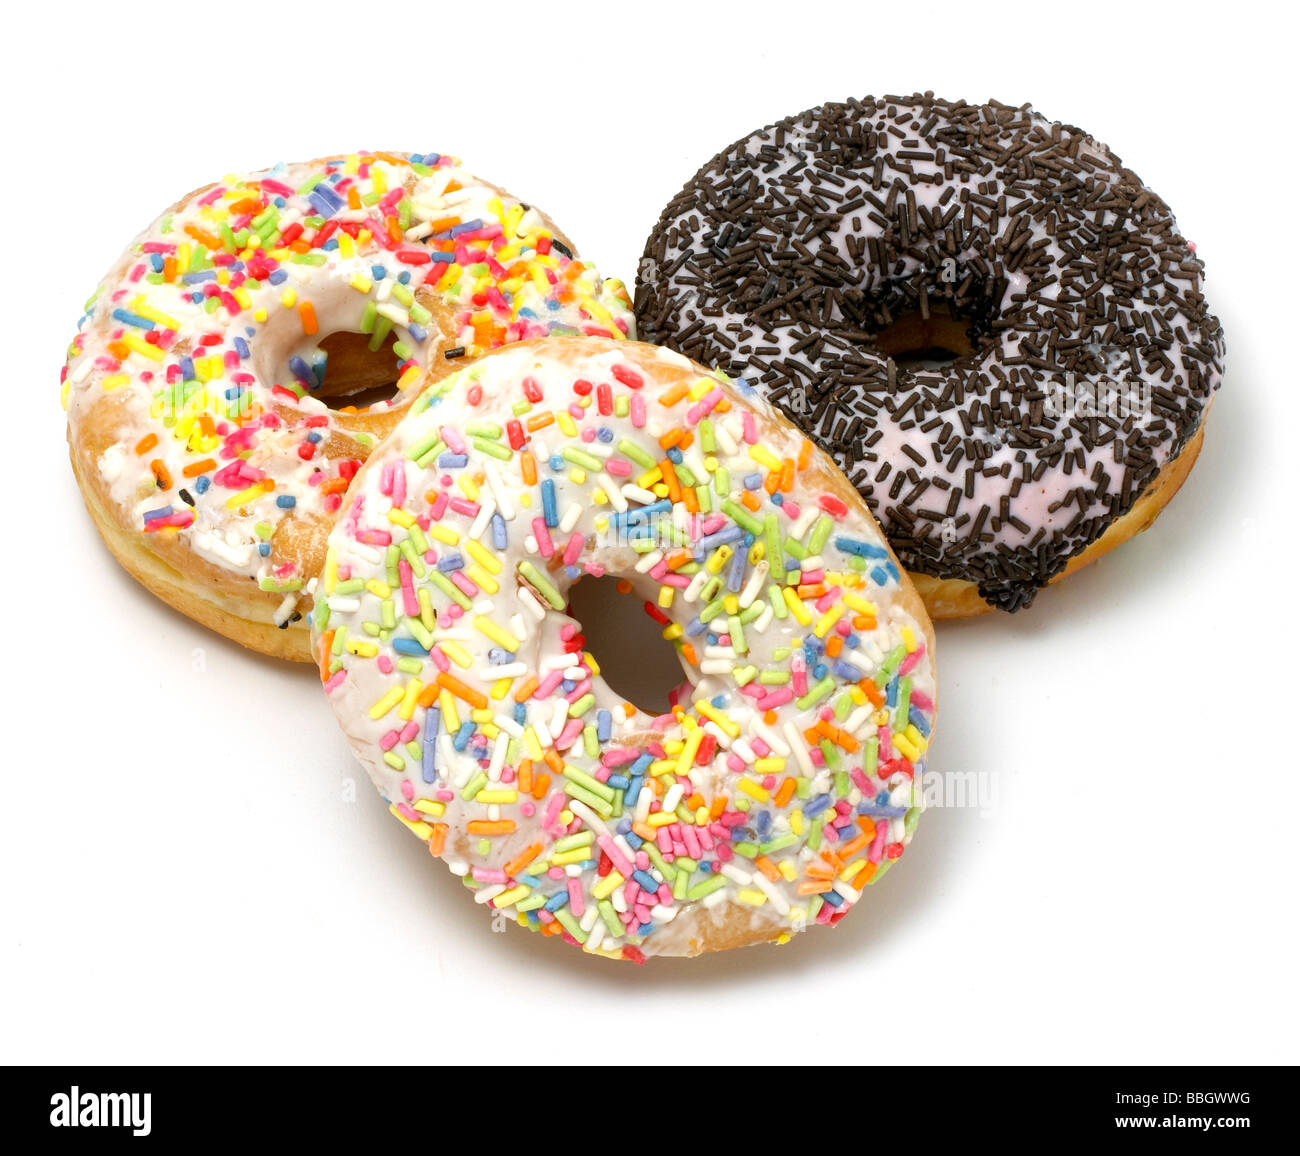 Doughnuts donuts cut out on a white background - Stock Image